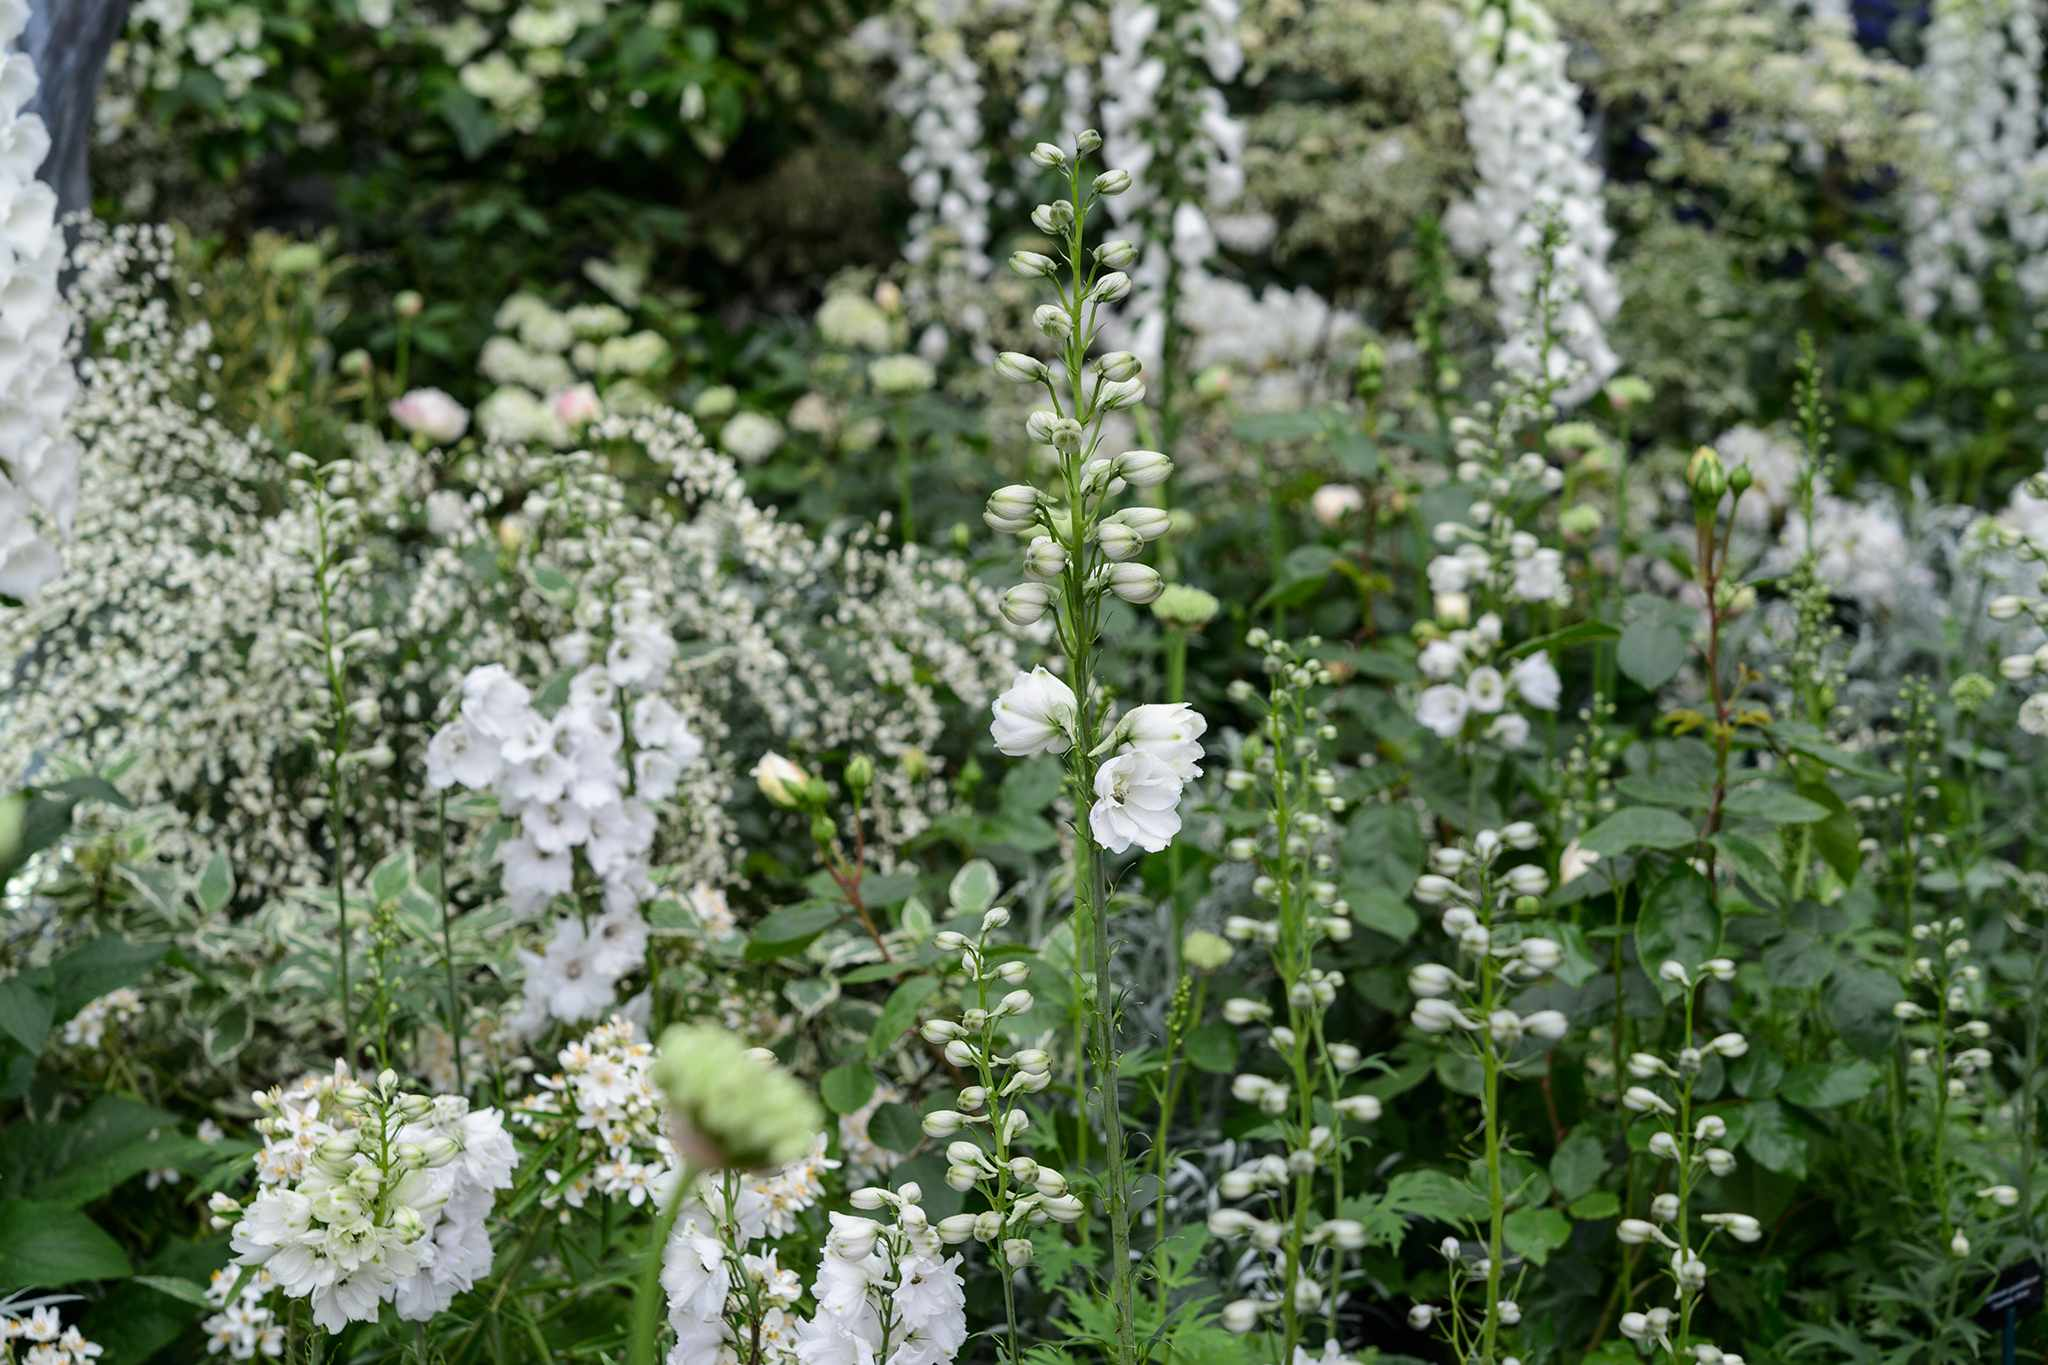 White alliums growing with cytisus and delphiniums